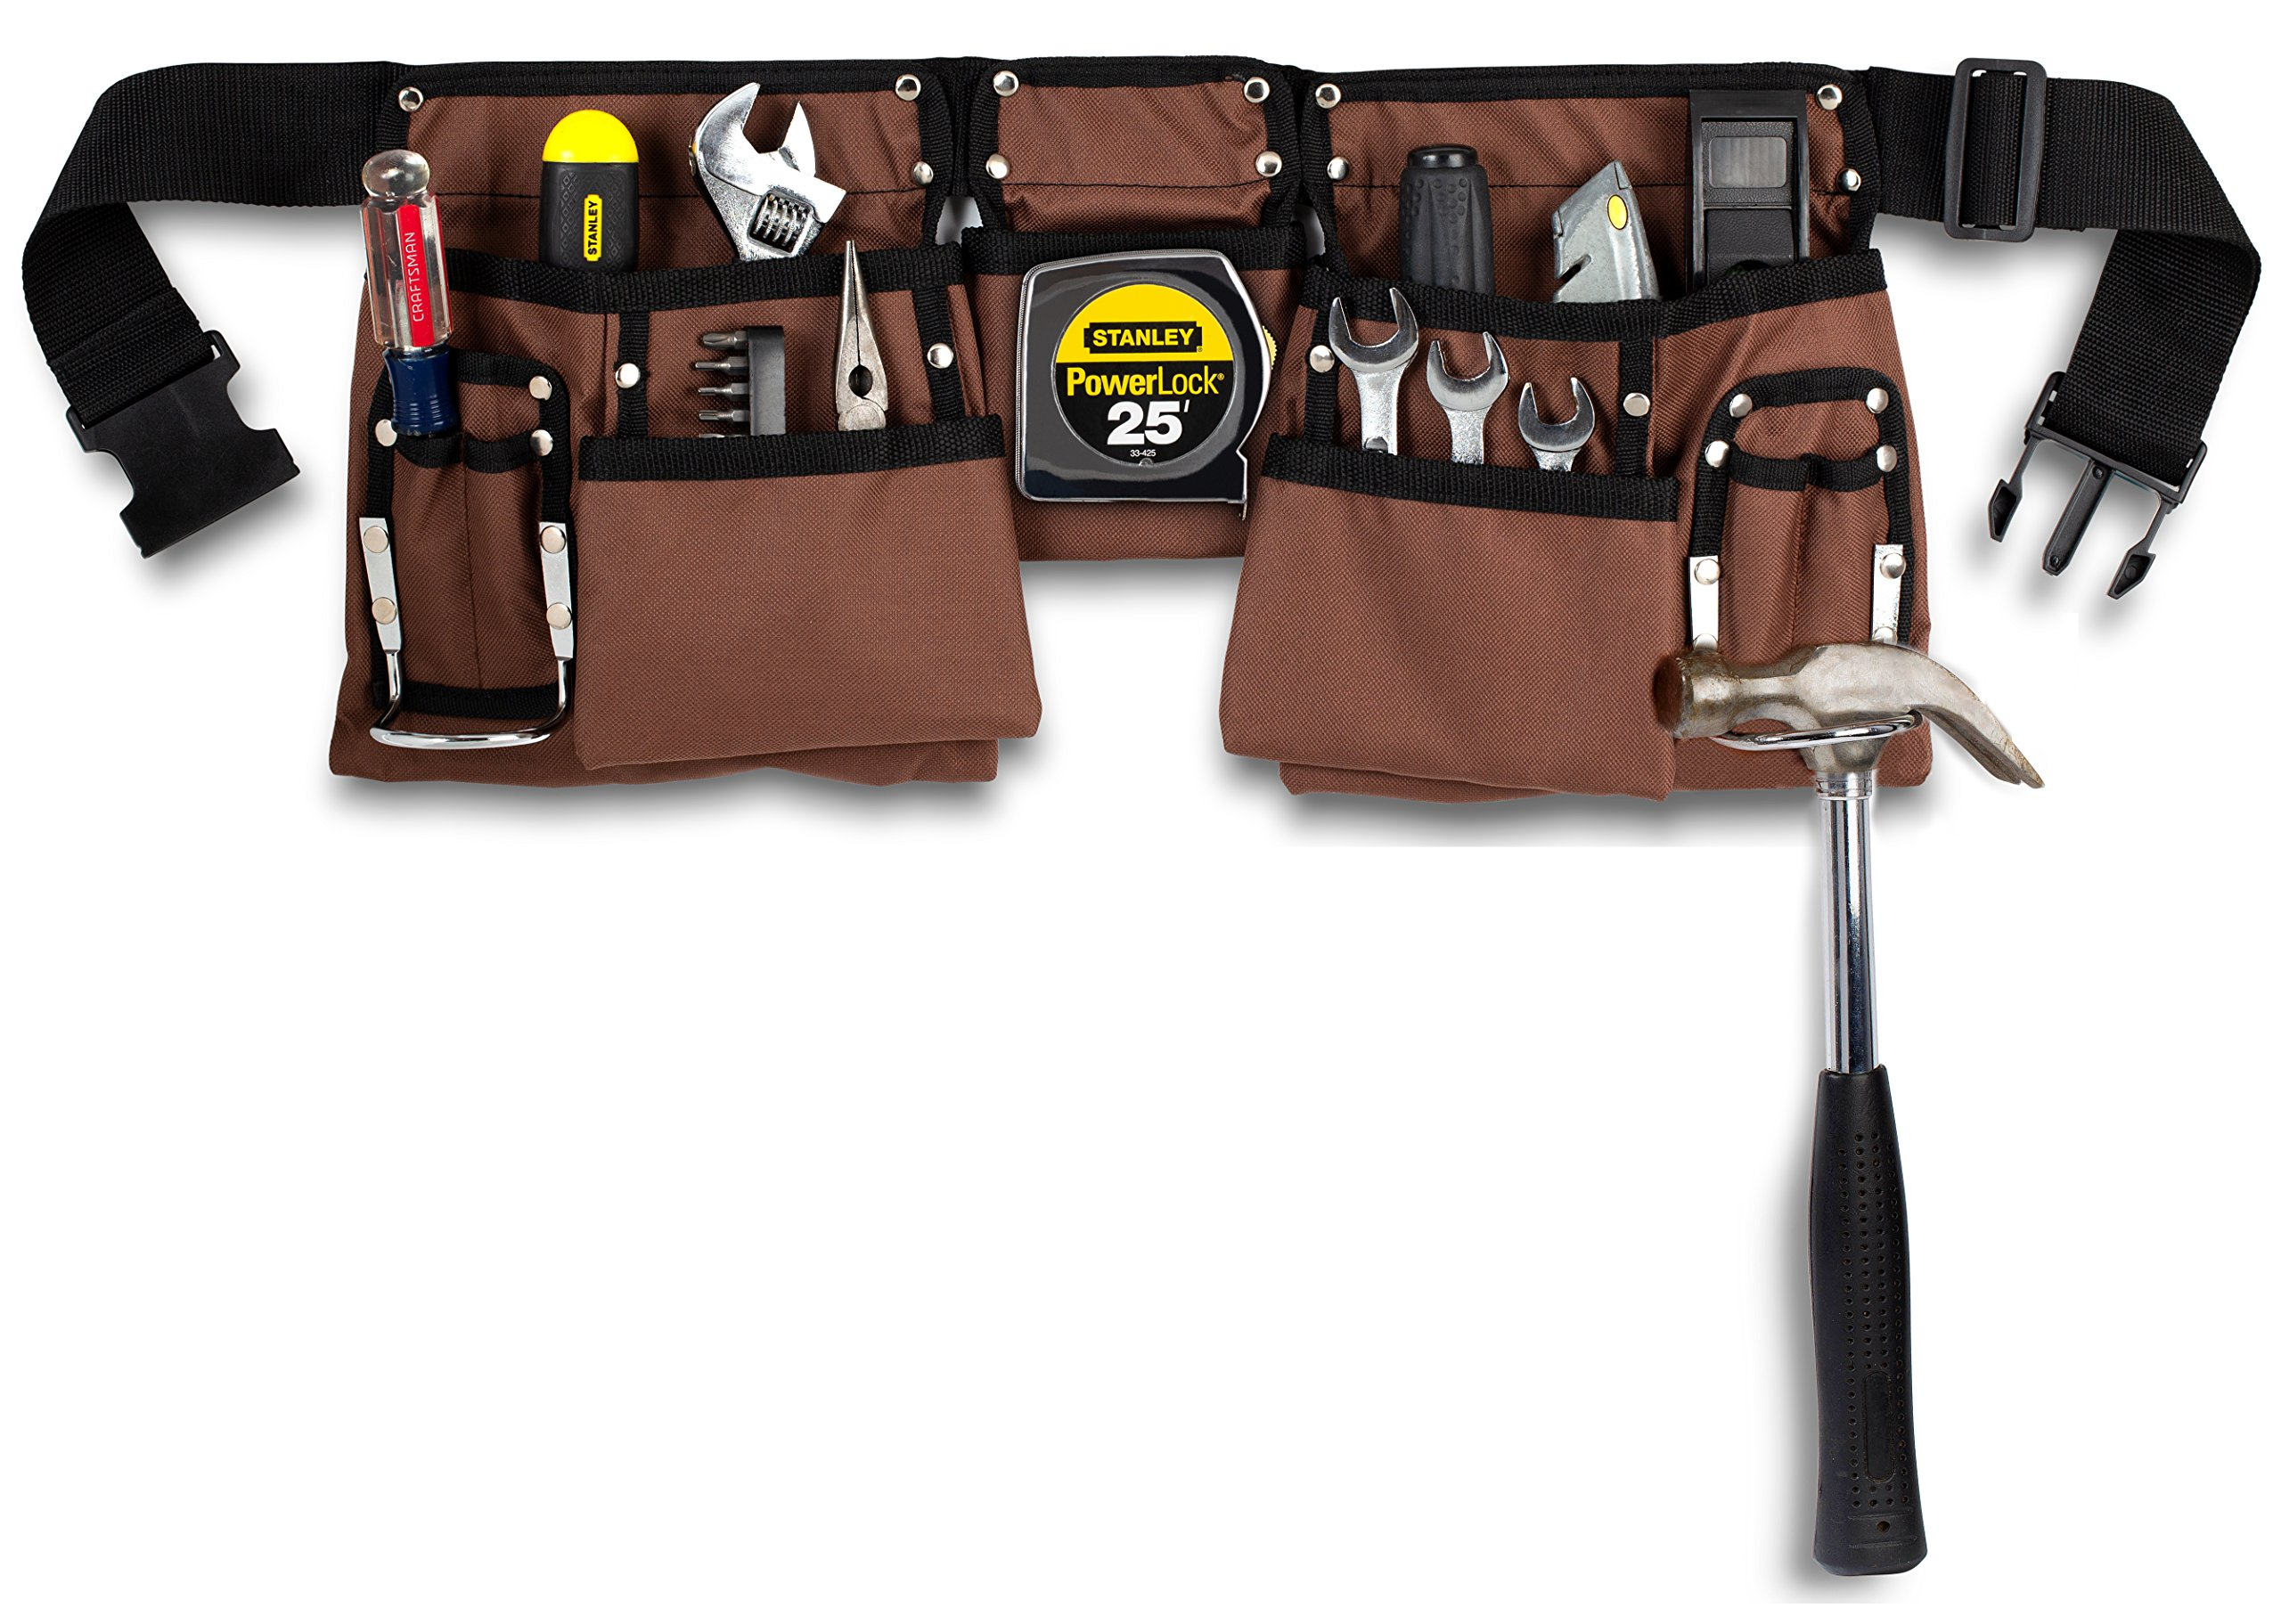 11 Pocket Brown and Black Heavy Duty Construction Tool Belt, Work Apron, Tool Pouch, with Poly Web Belt Quick Release Buckle - Adjusts from 33'' Inches All the Way to 52'' Inches by GlossyEnd